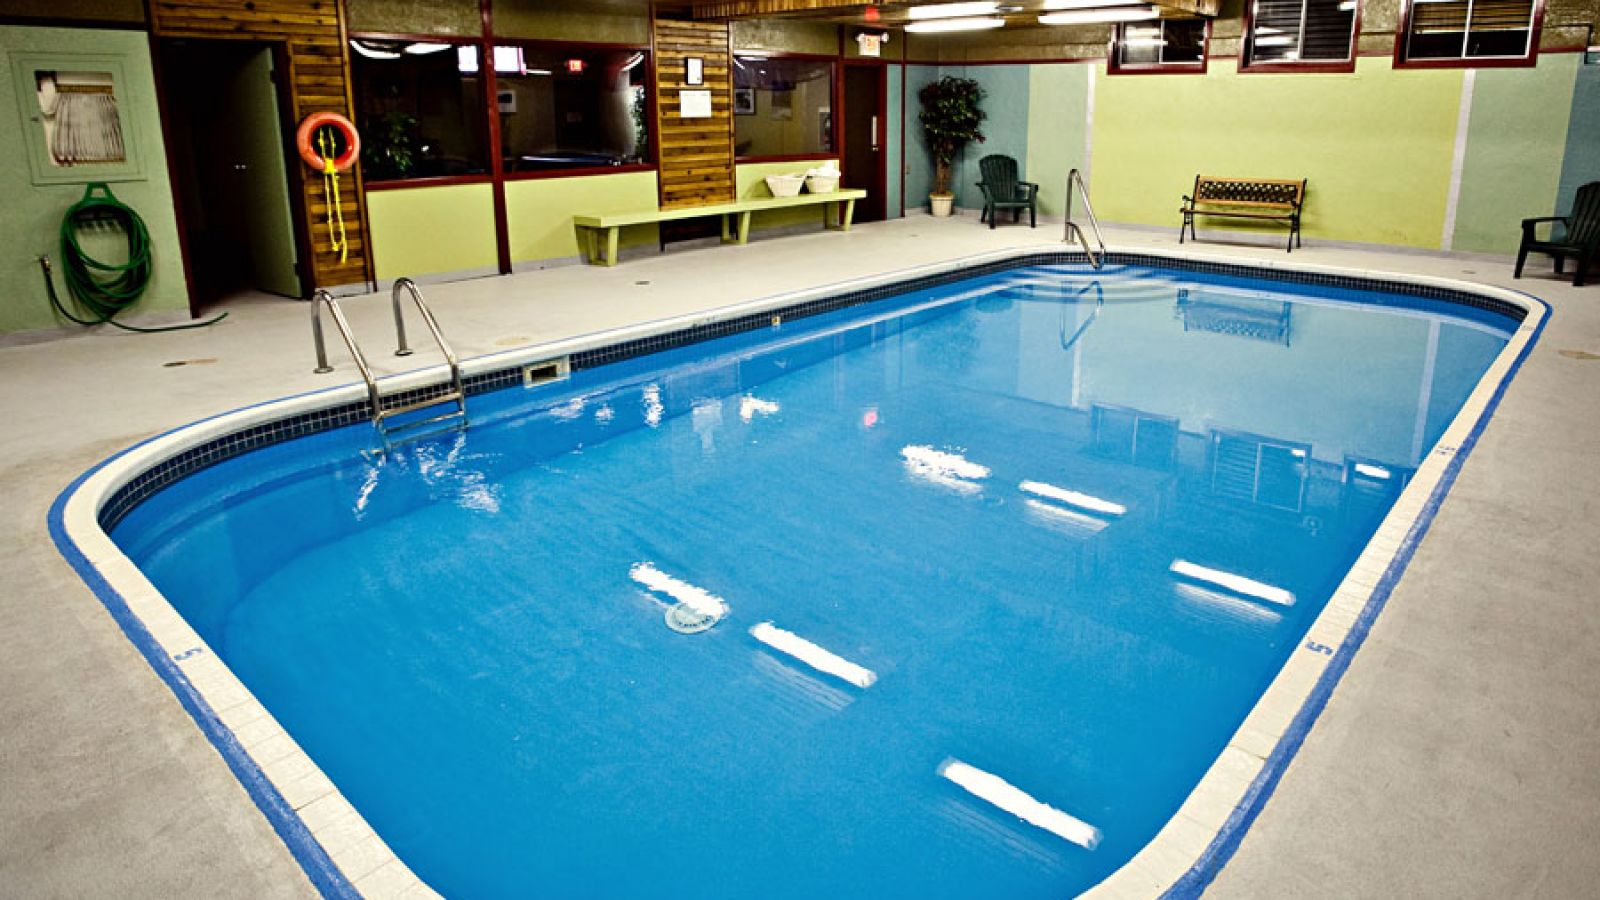 Enjoy the indoor pool year-round.